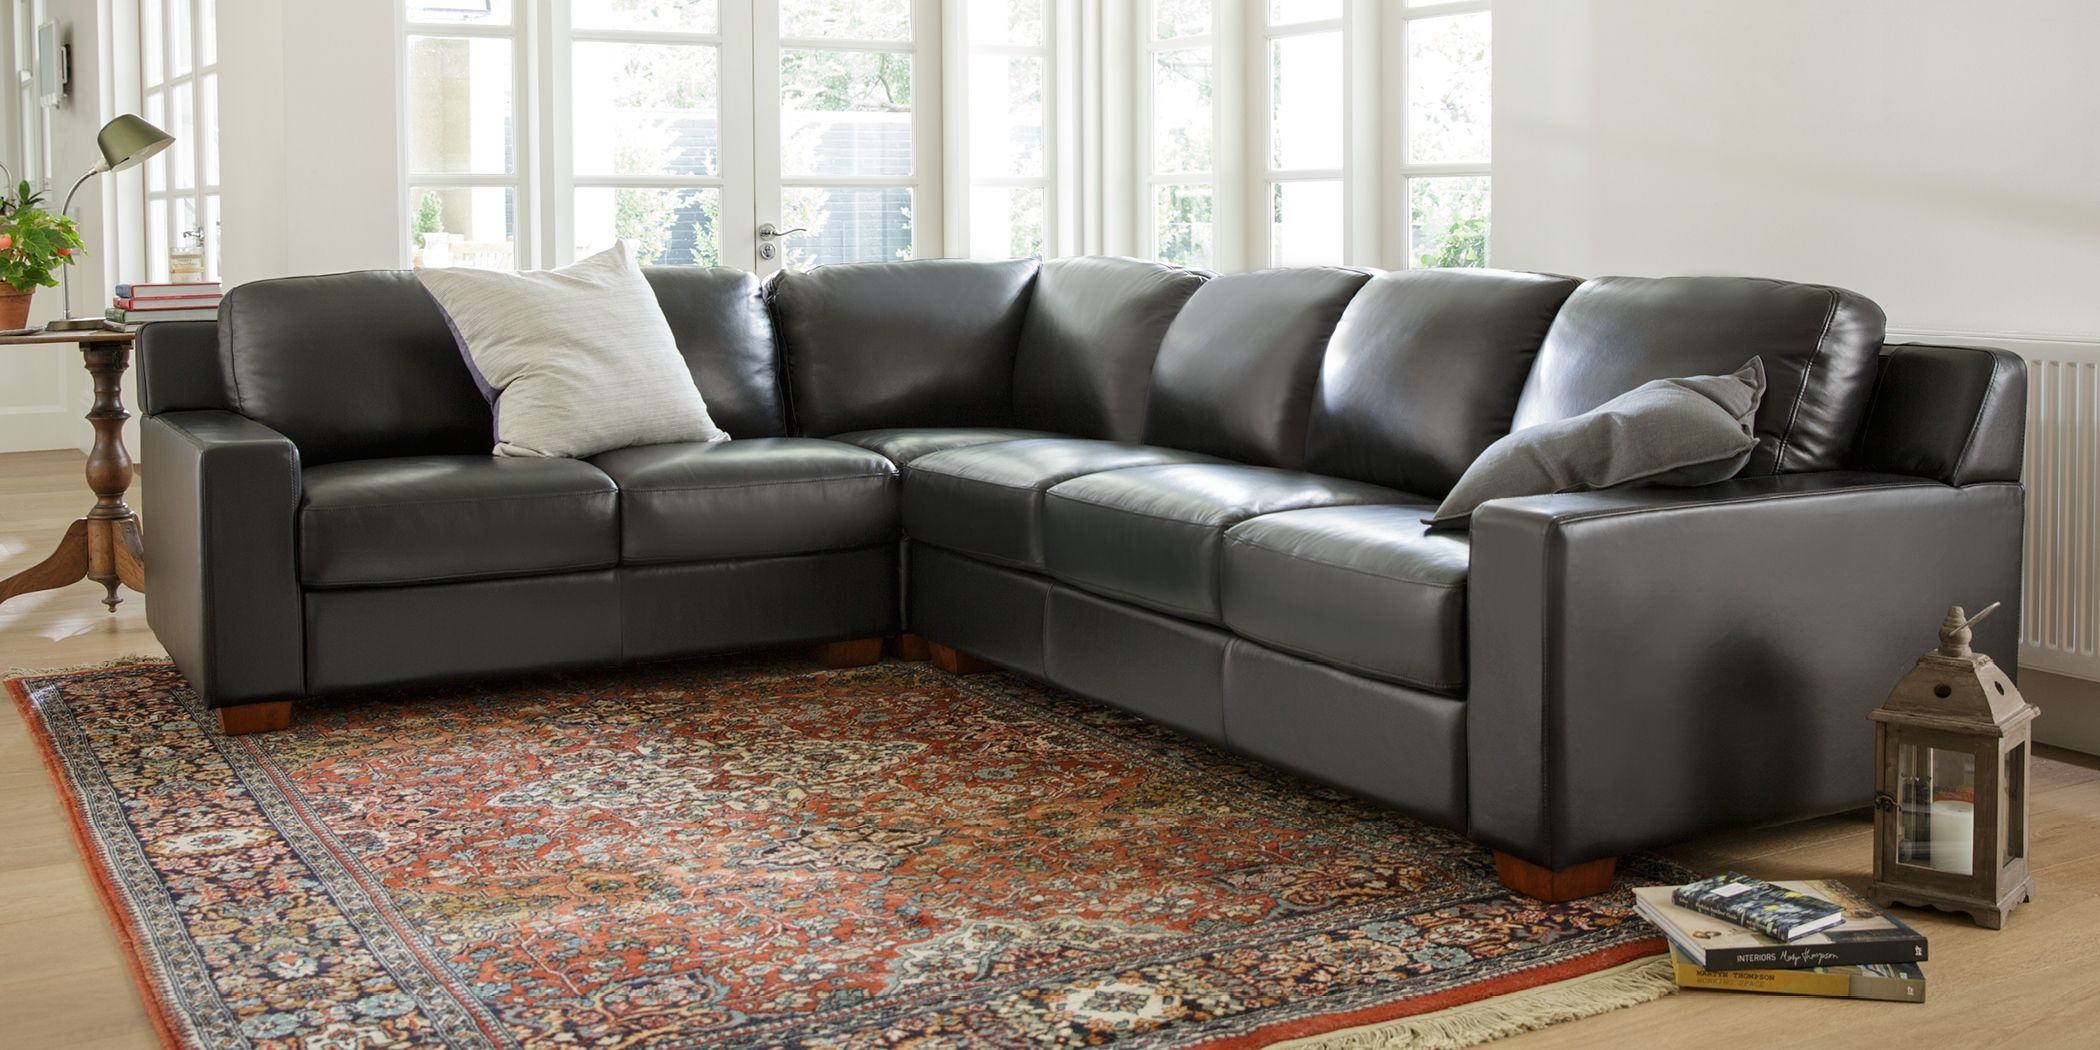 Plush Leather Sofa Beds